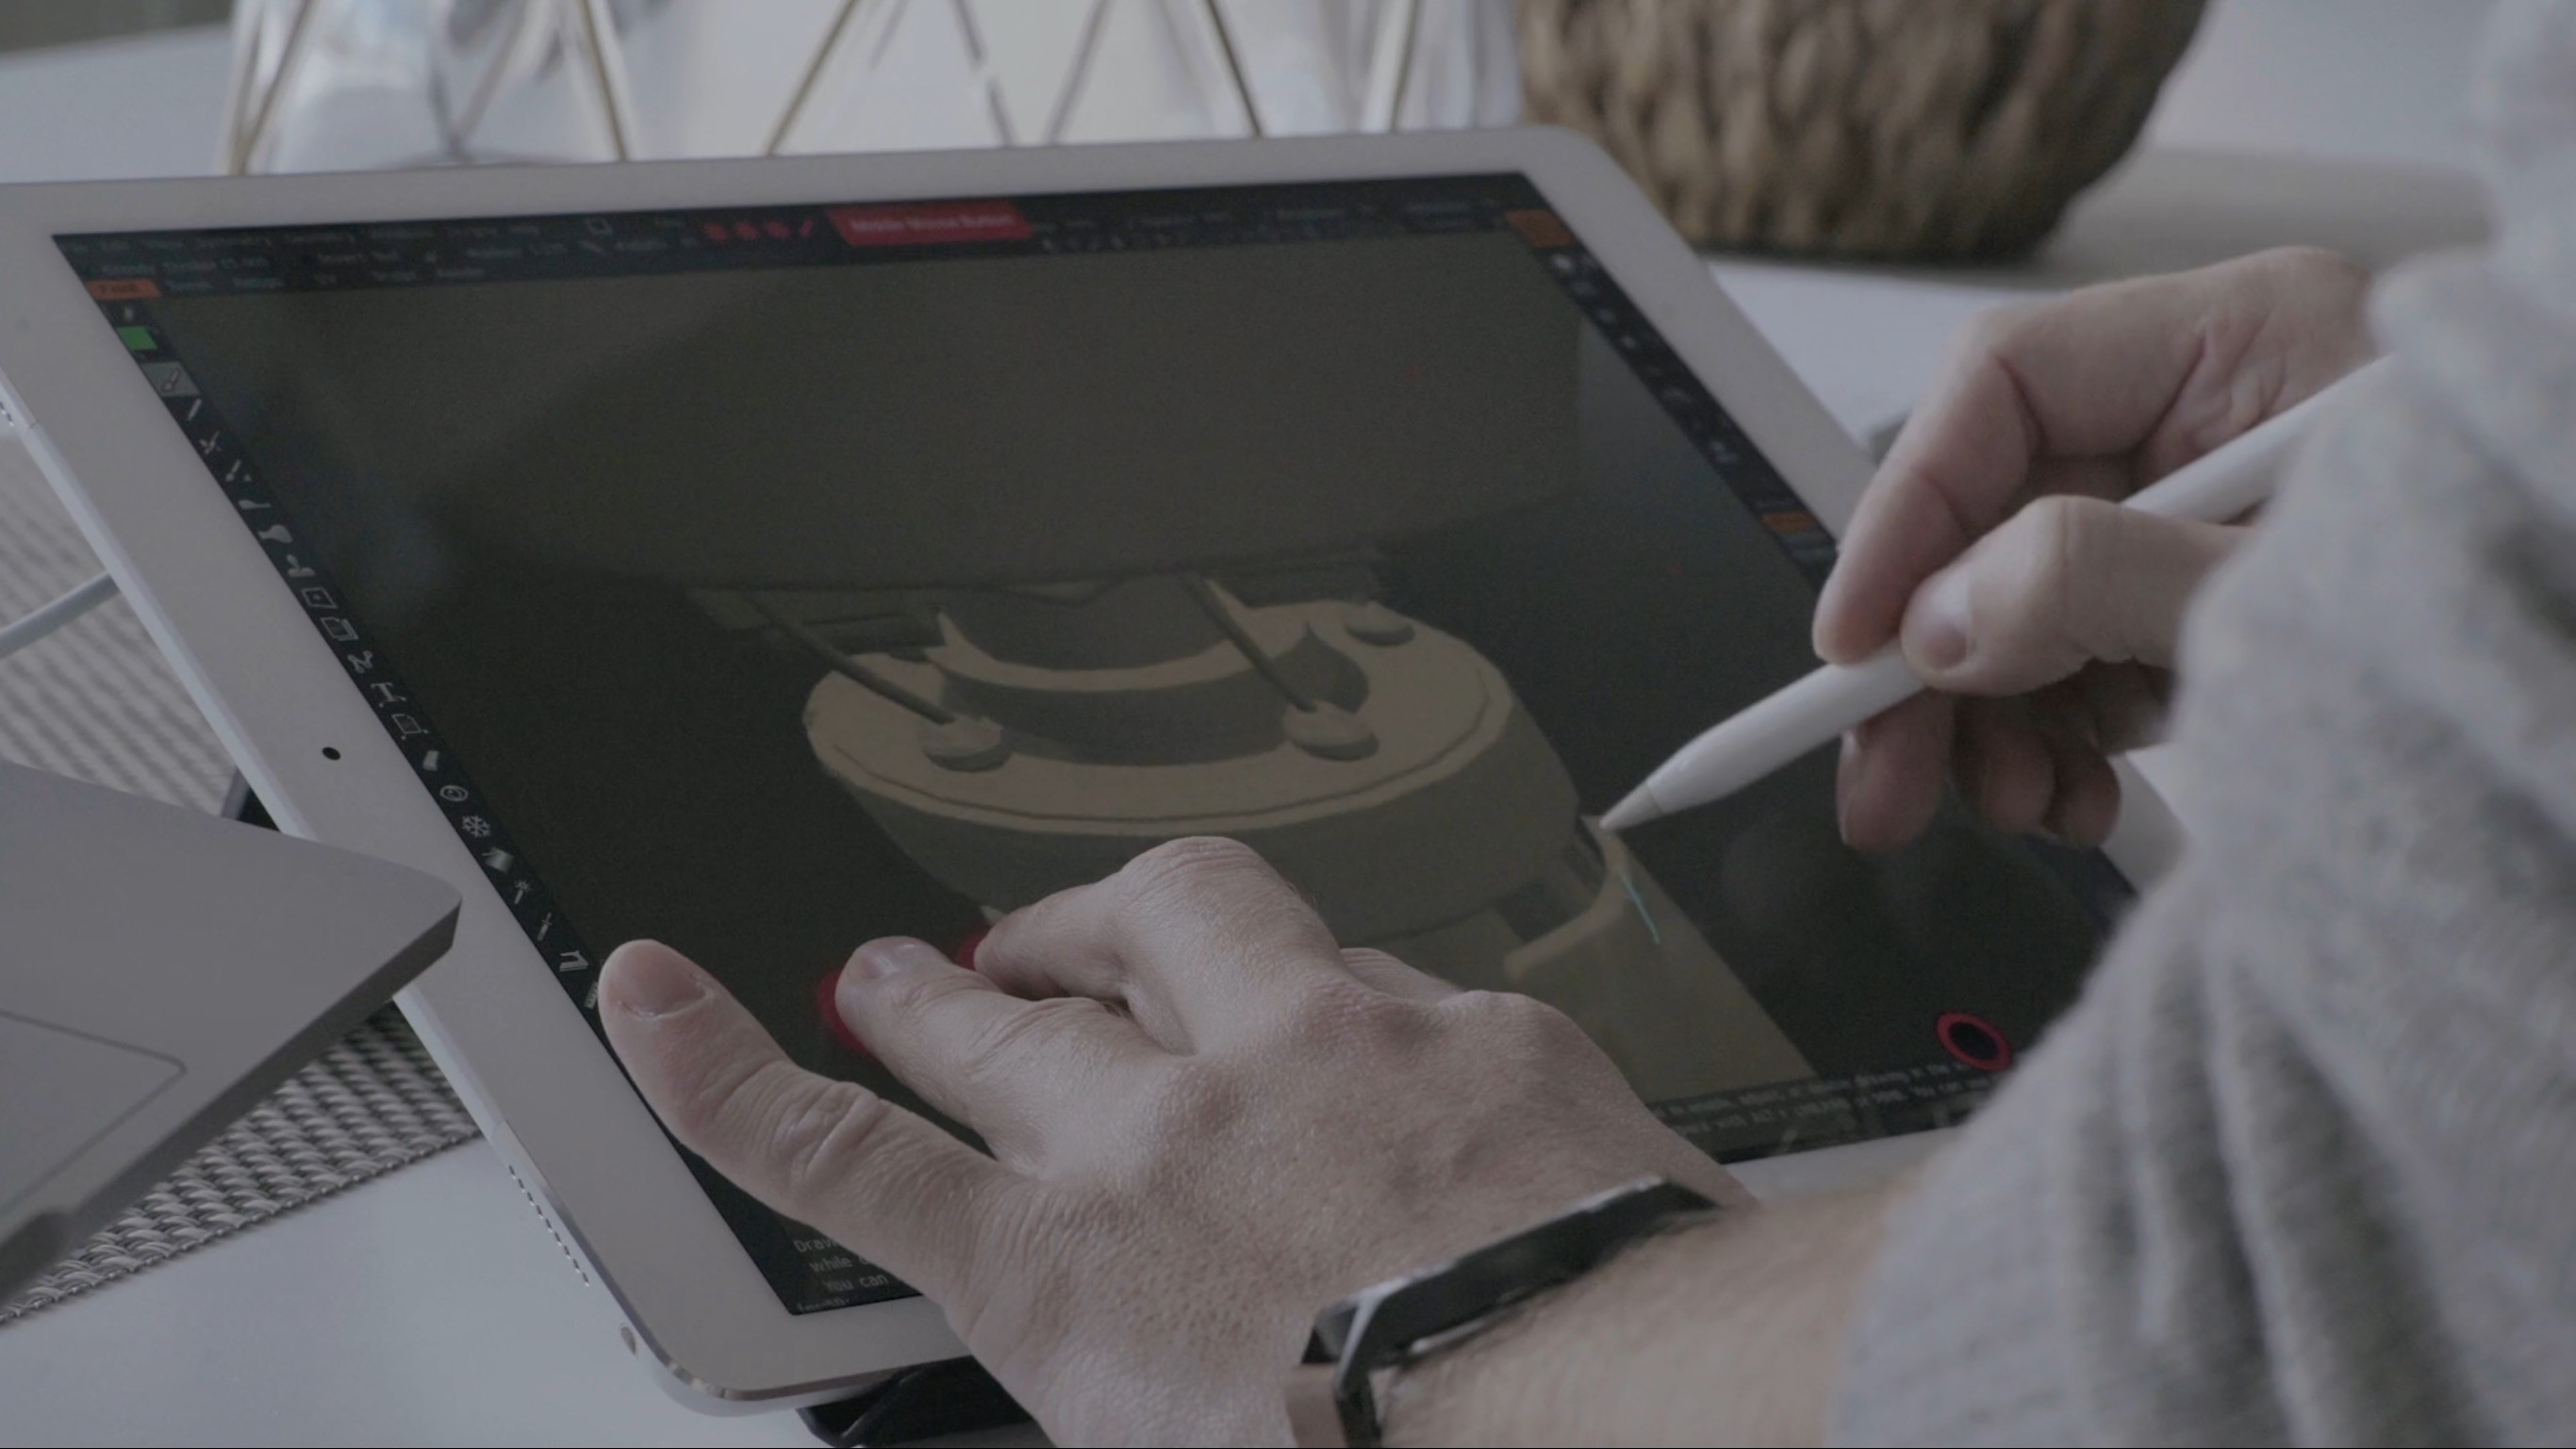 Two-handed workflows made possible by customizable gestures.